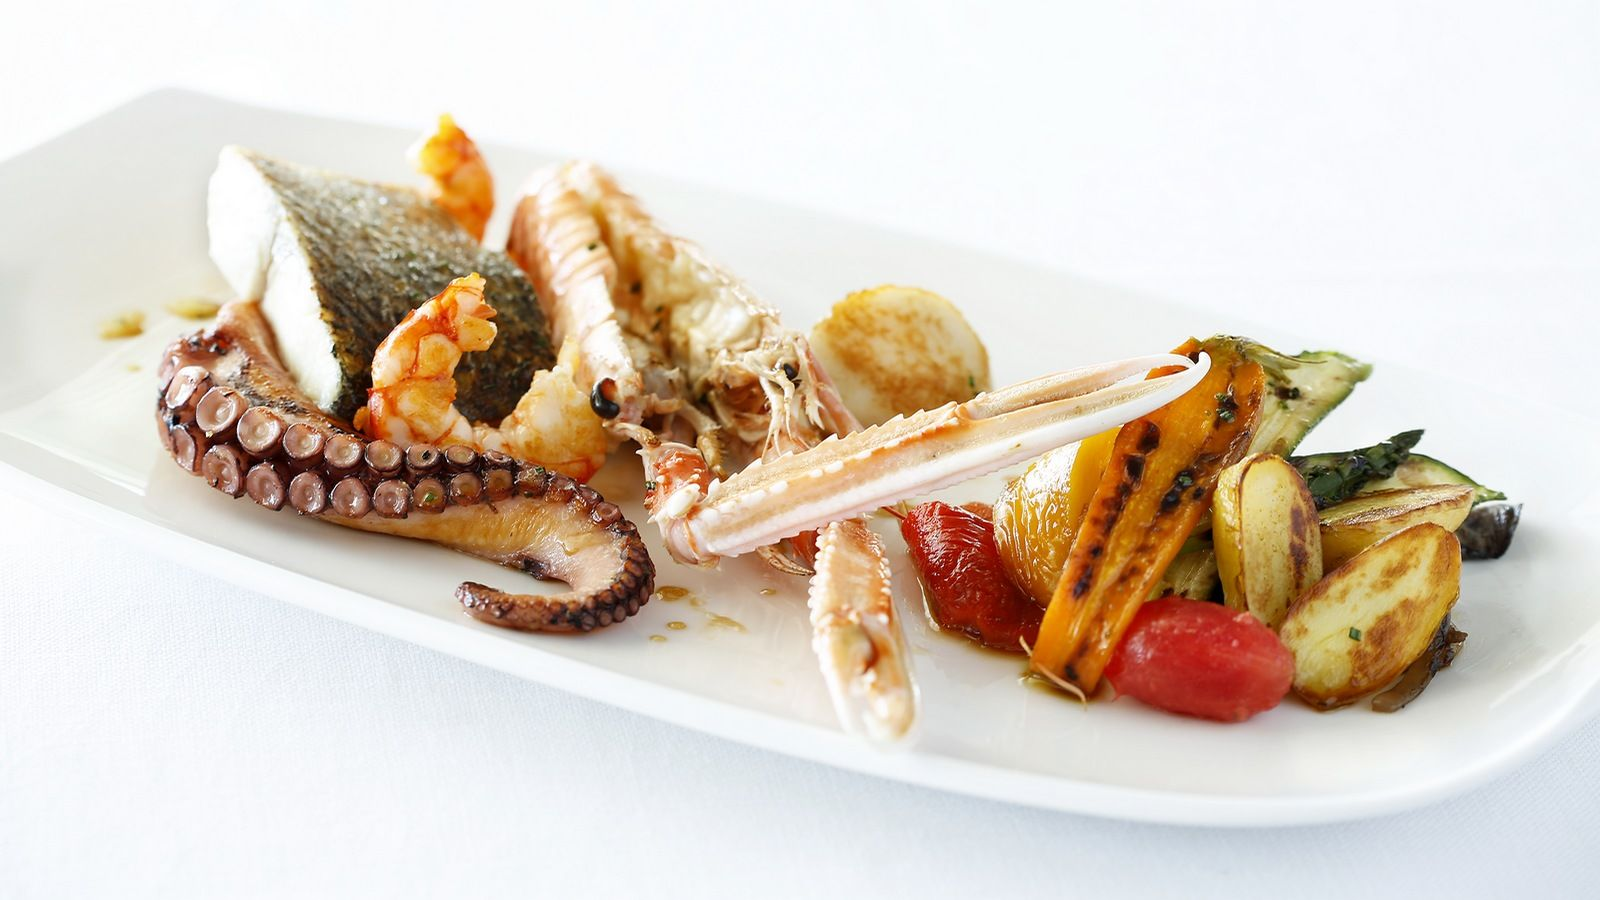 Fish and grilled vegetables